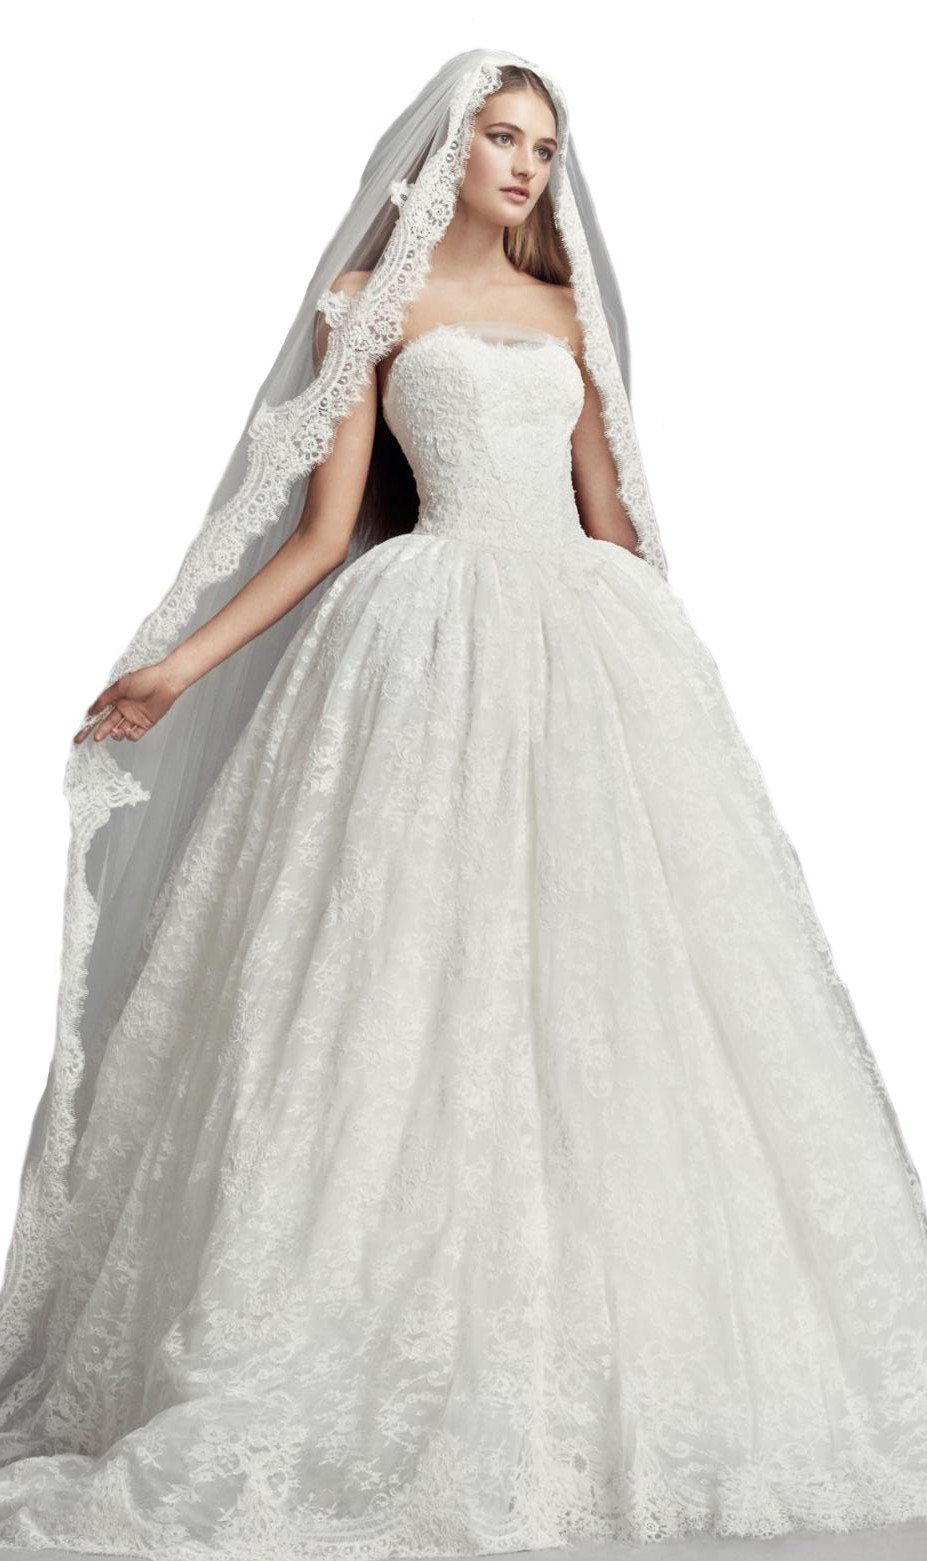 Passat Ivory XLCathedral 2T French Lace Appliqued Mantilla-Style Bridal Veil DB14